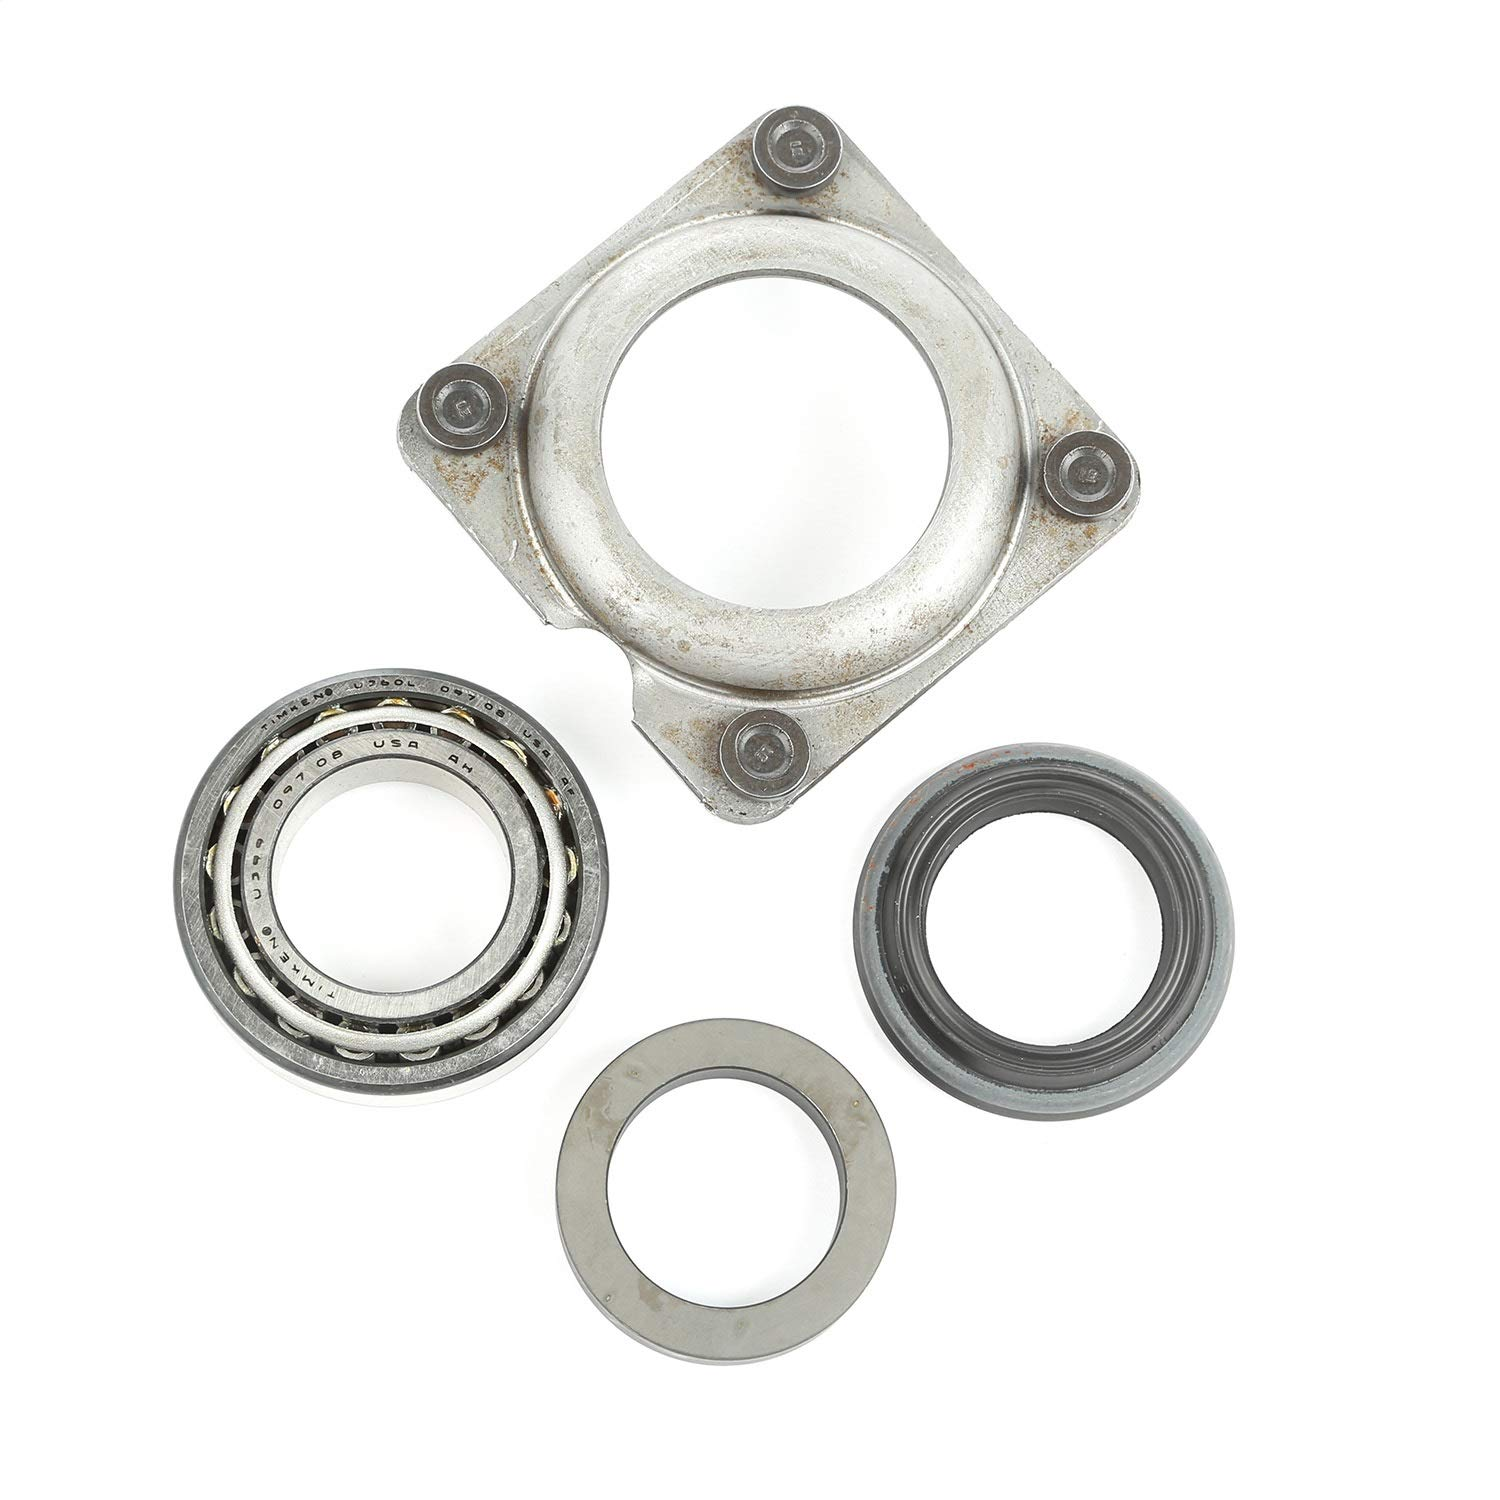 Omix-ADA 16534.41 Axle Bearing Kit for Dana 35/44 by Omix-Ada